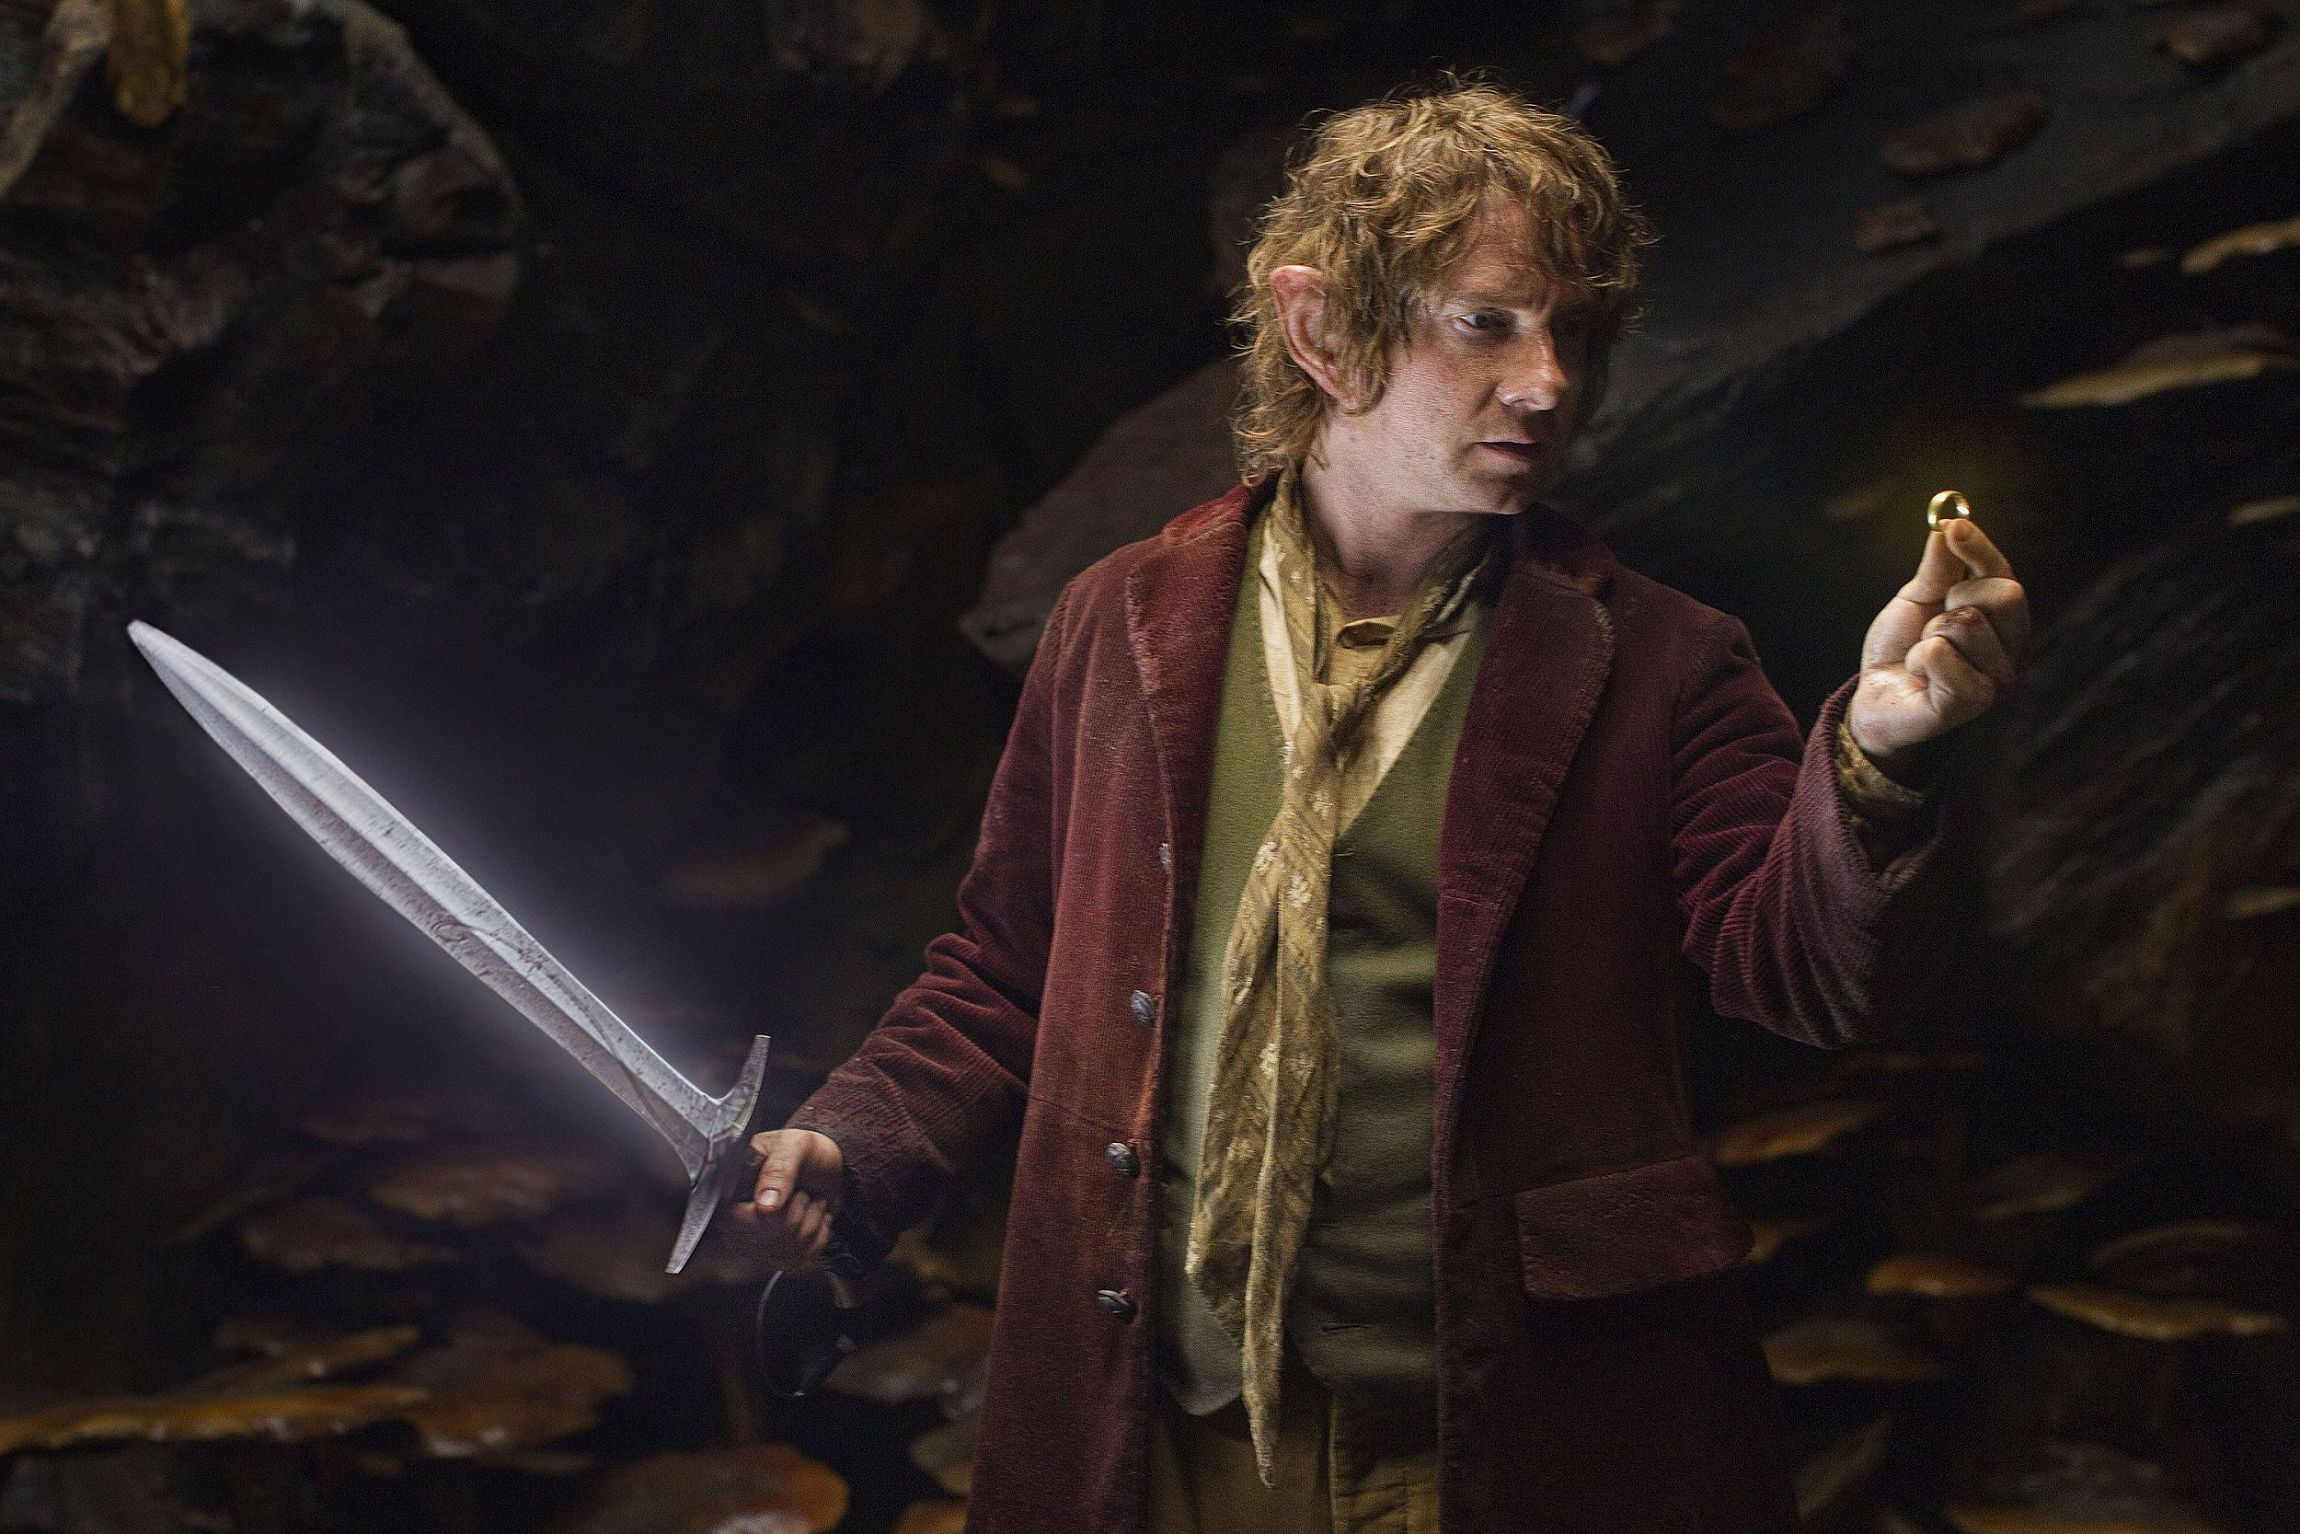 the story and journey of bilbo baggins